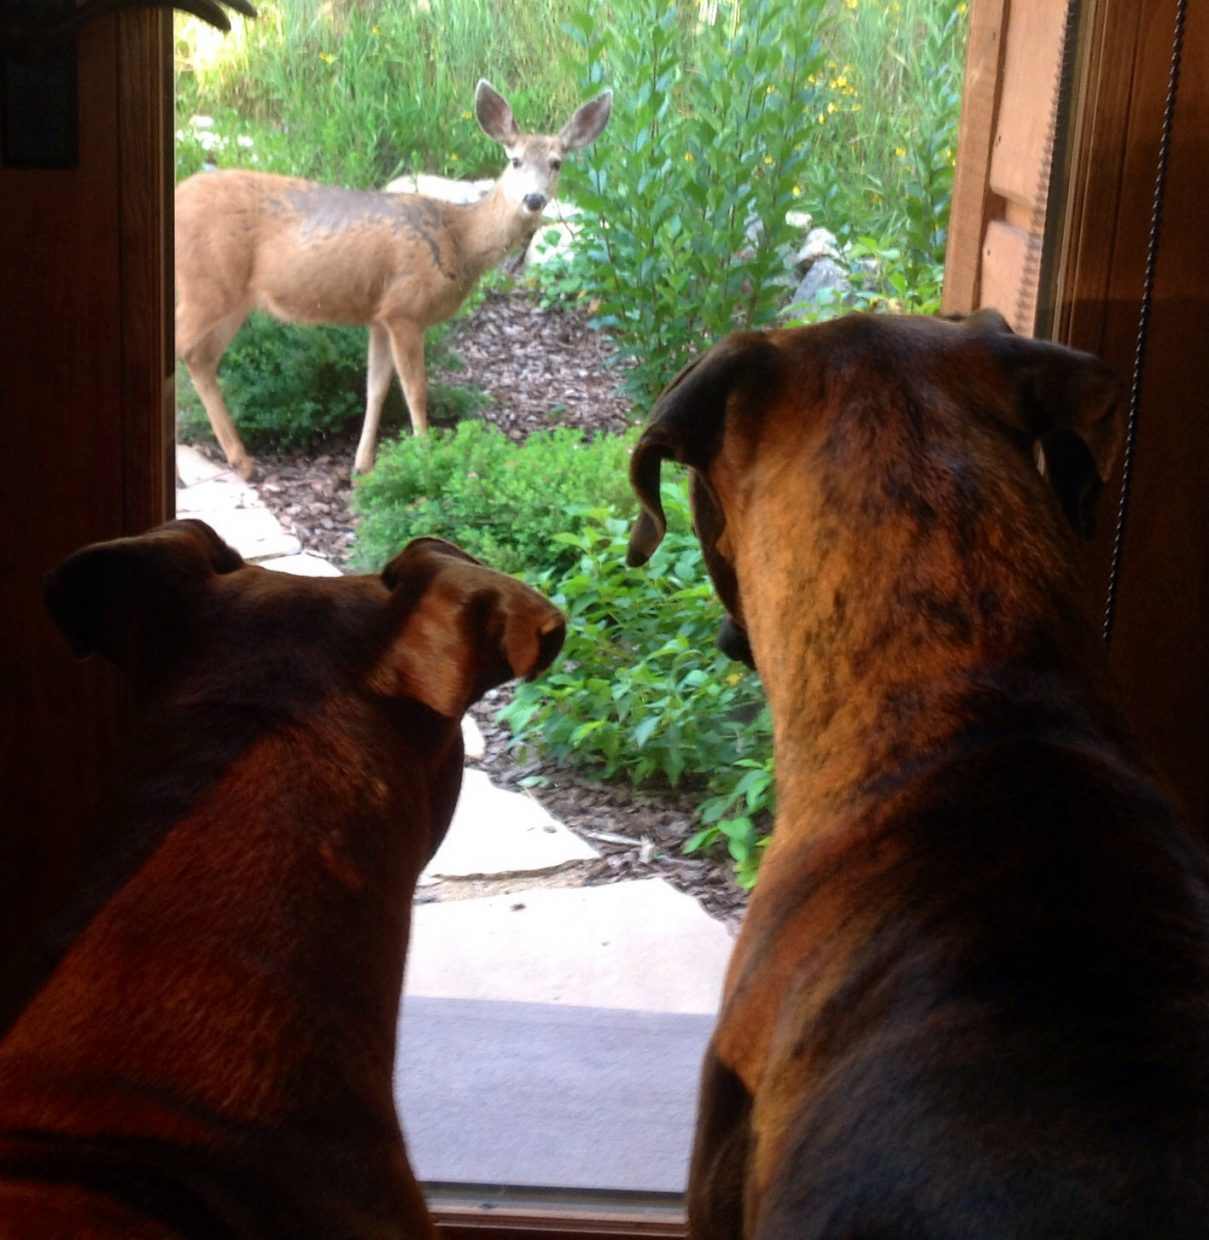 The Gardener... Boxers Jake & Chance Gannett watch a deer as he makes his way through the garden at their home in Steamboat. Submitted by Jenny Gannett.